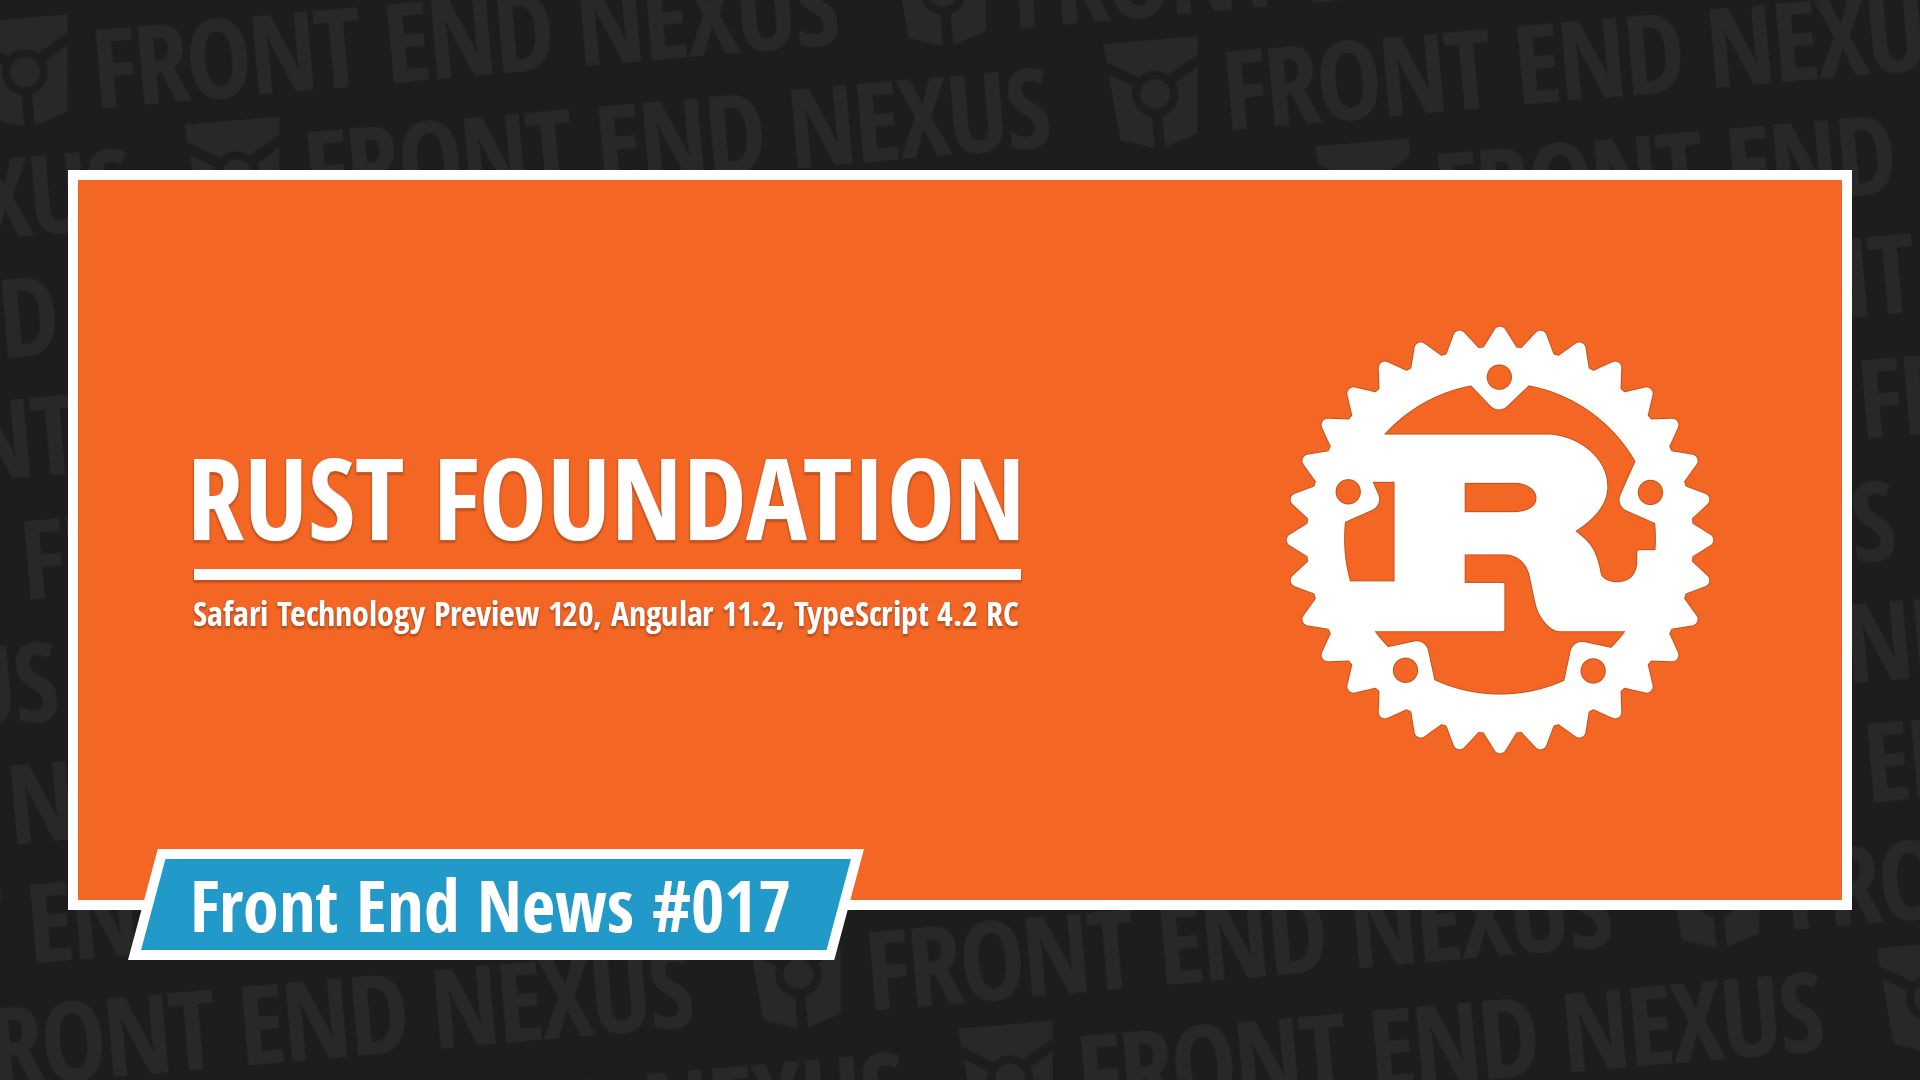 The Rust Foundation, Chrome ditching third-party cookies, and Safari Technology Preview 120 | Front End News #017